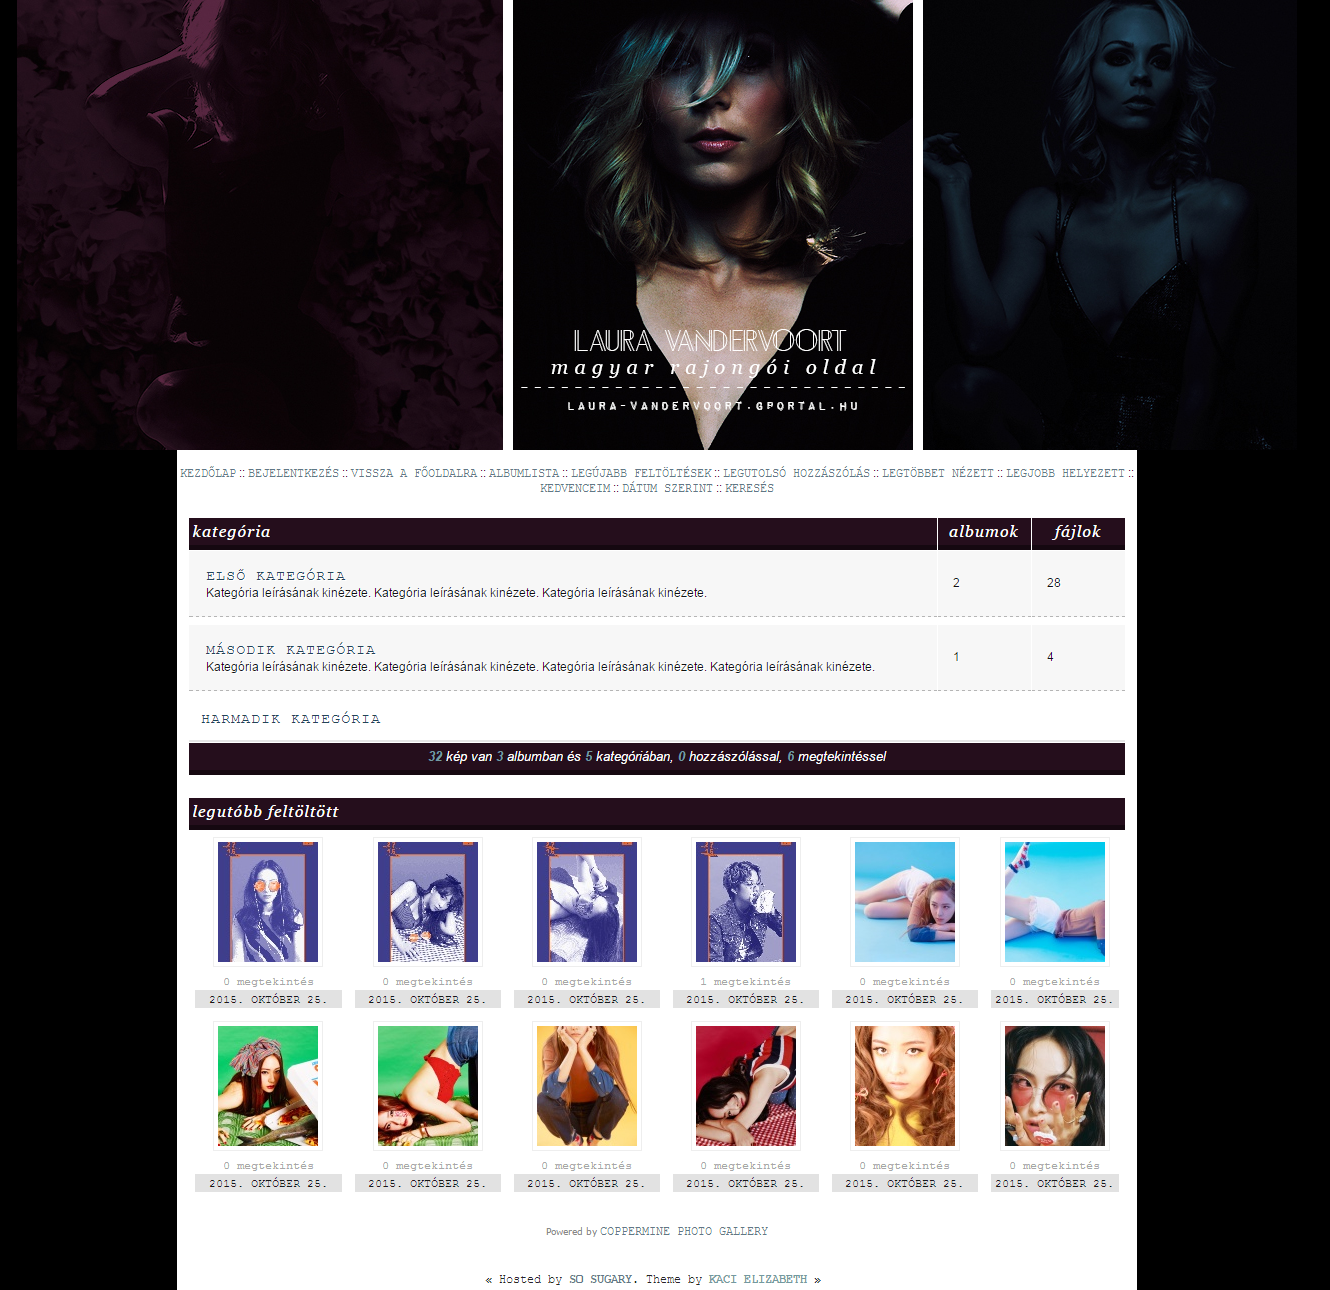 vandervoort chat sites Anna is a fictional character from the saw franchise as well as one of the secondary protagonists of jigsaw she is portrayed by laura vandervoort anna was chat.